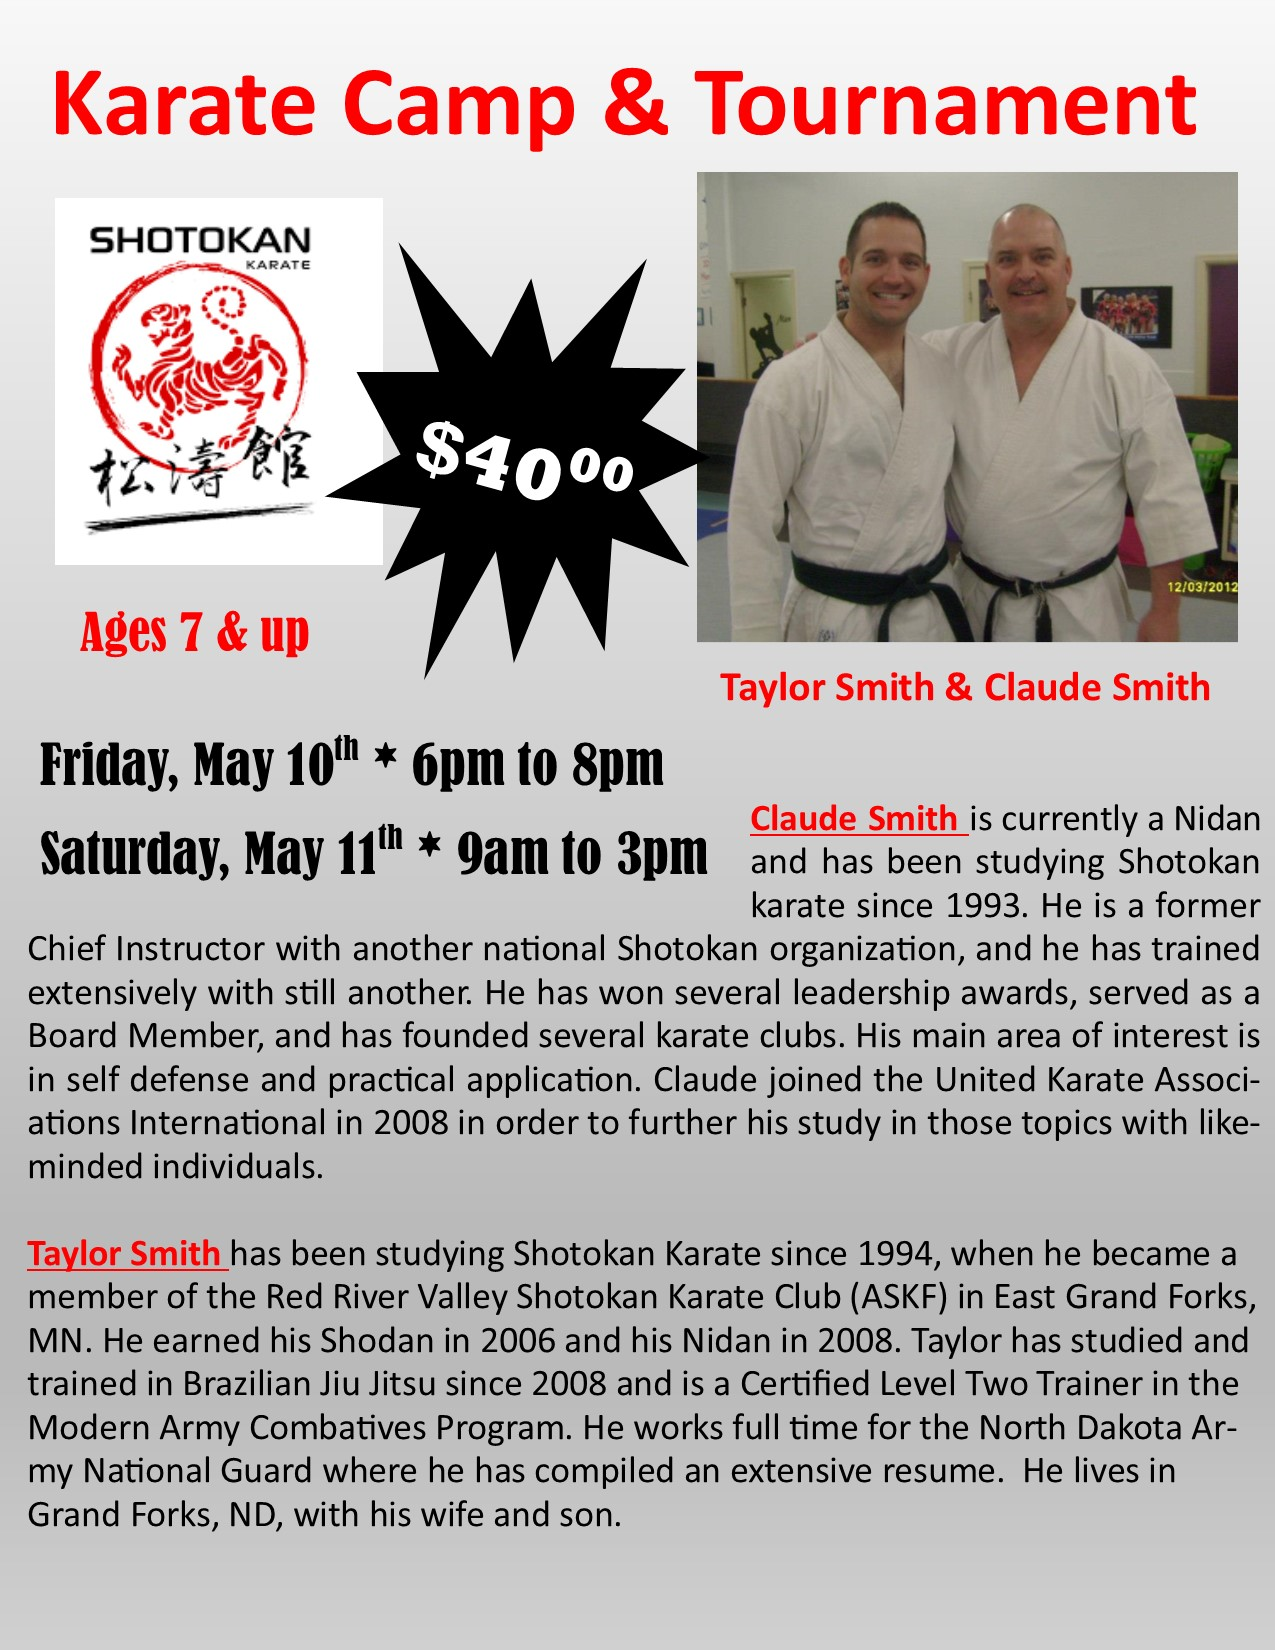 Karate Camp Flier.jpg